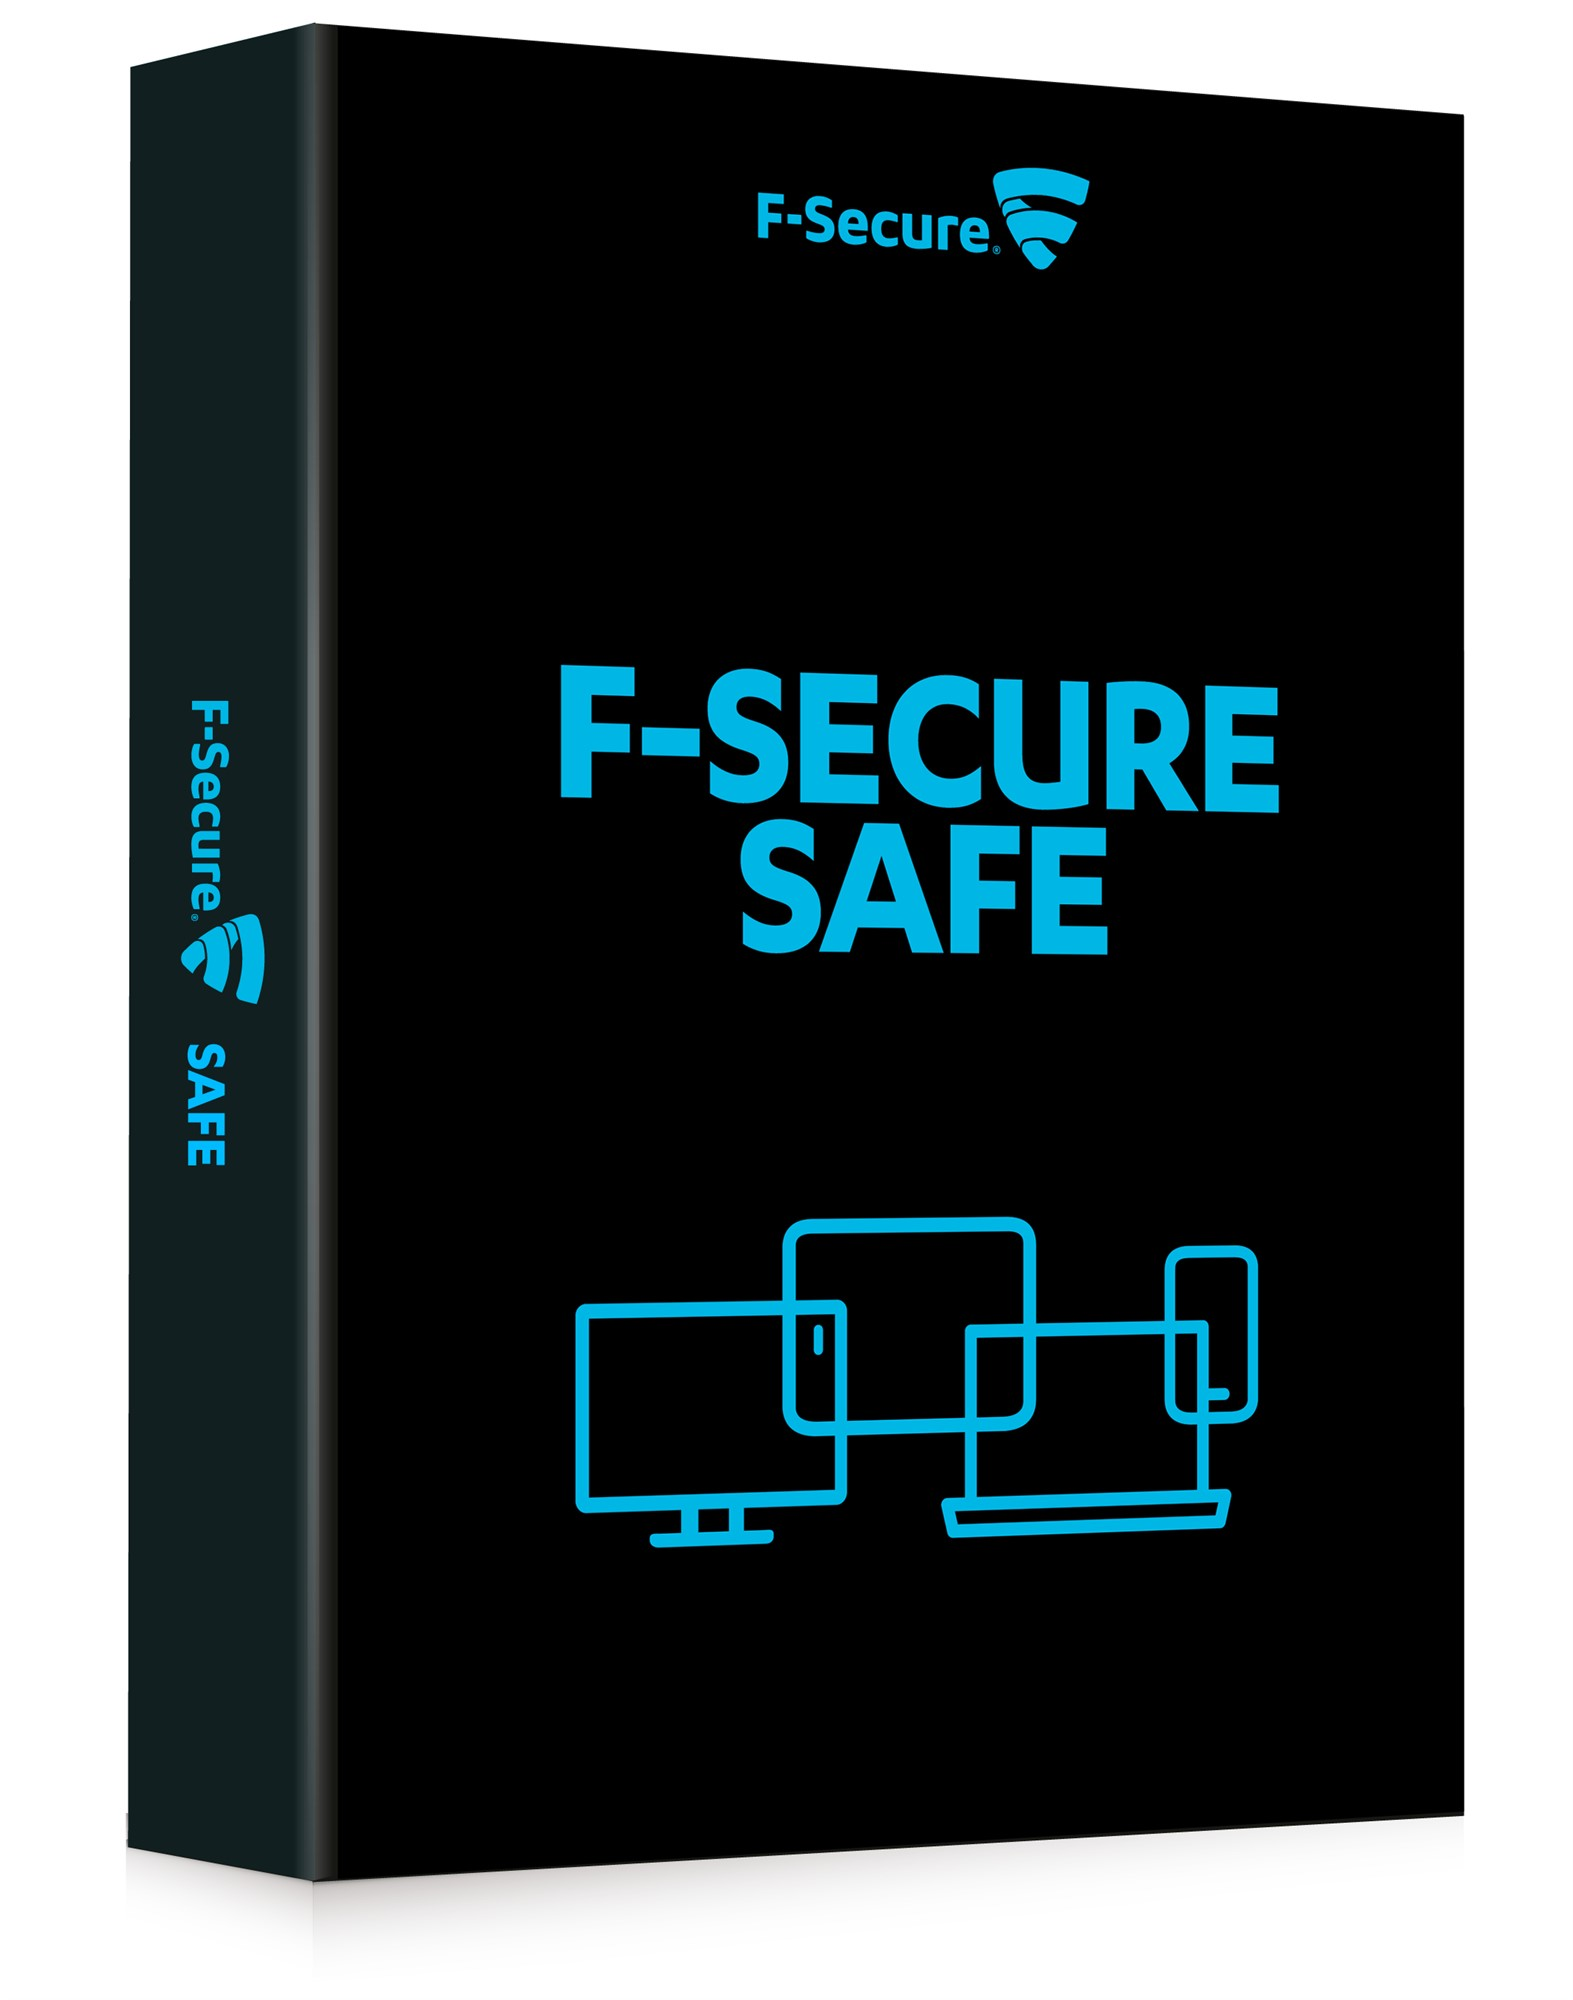 F-SECURE FCFXBR2N005E1 SAFE FULL LICENSE 2YEAR(S) MULTILINGUAL